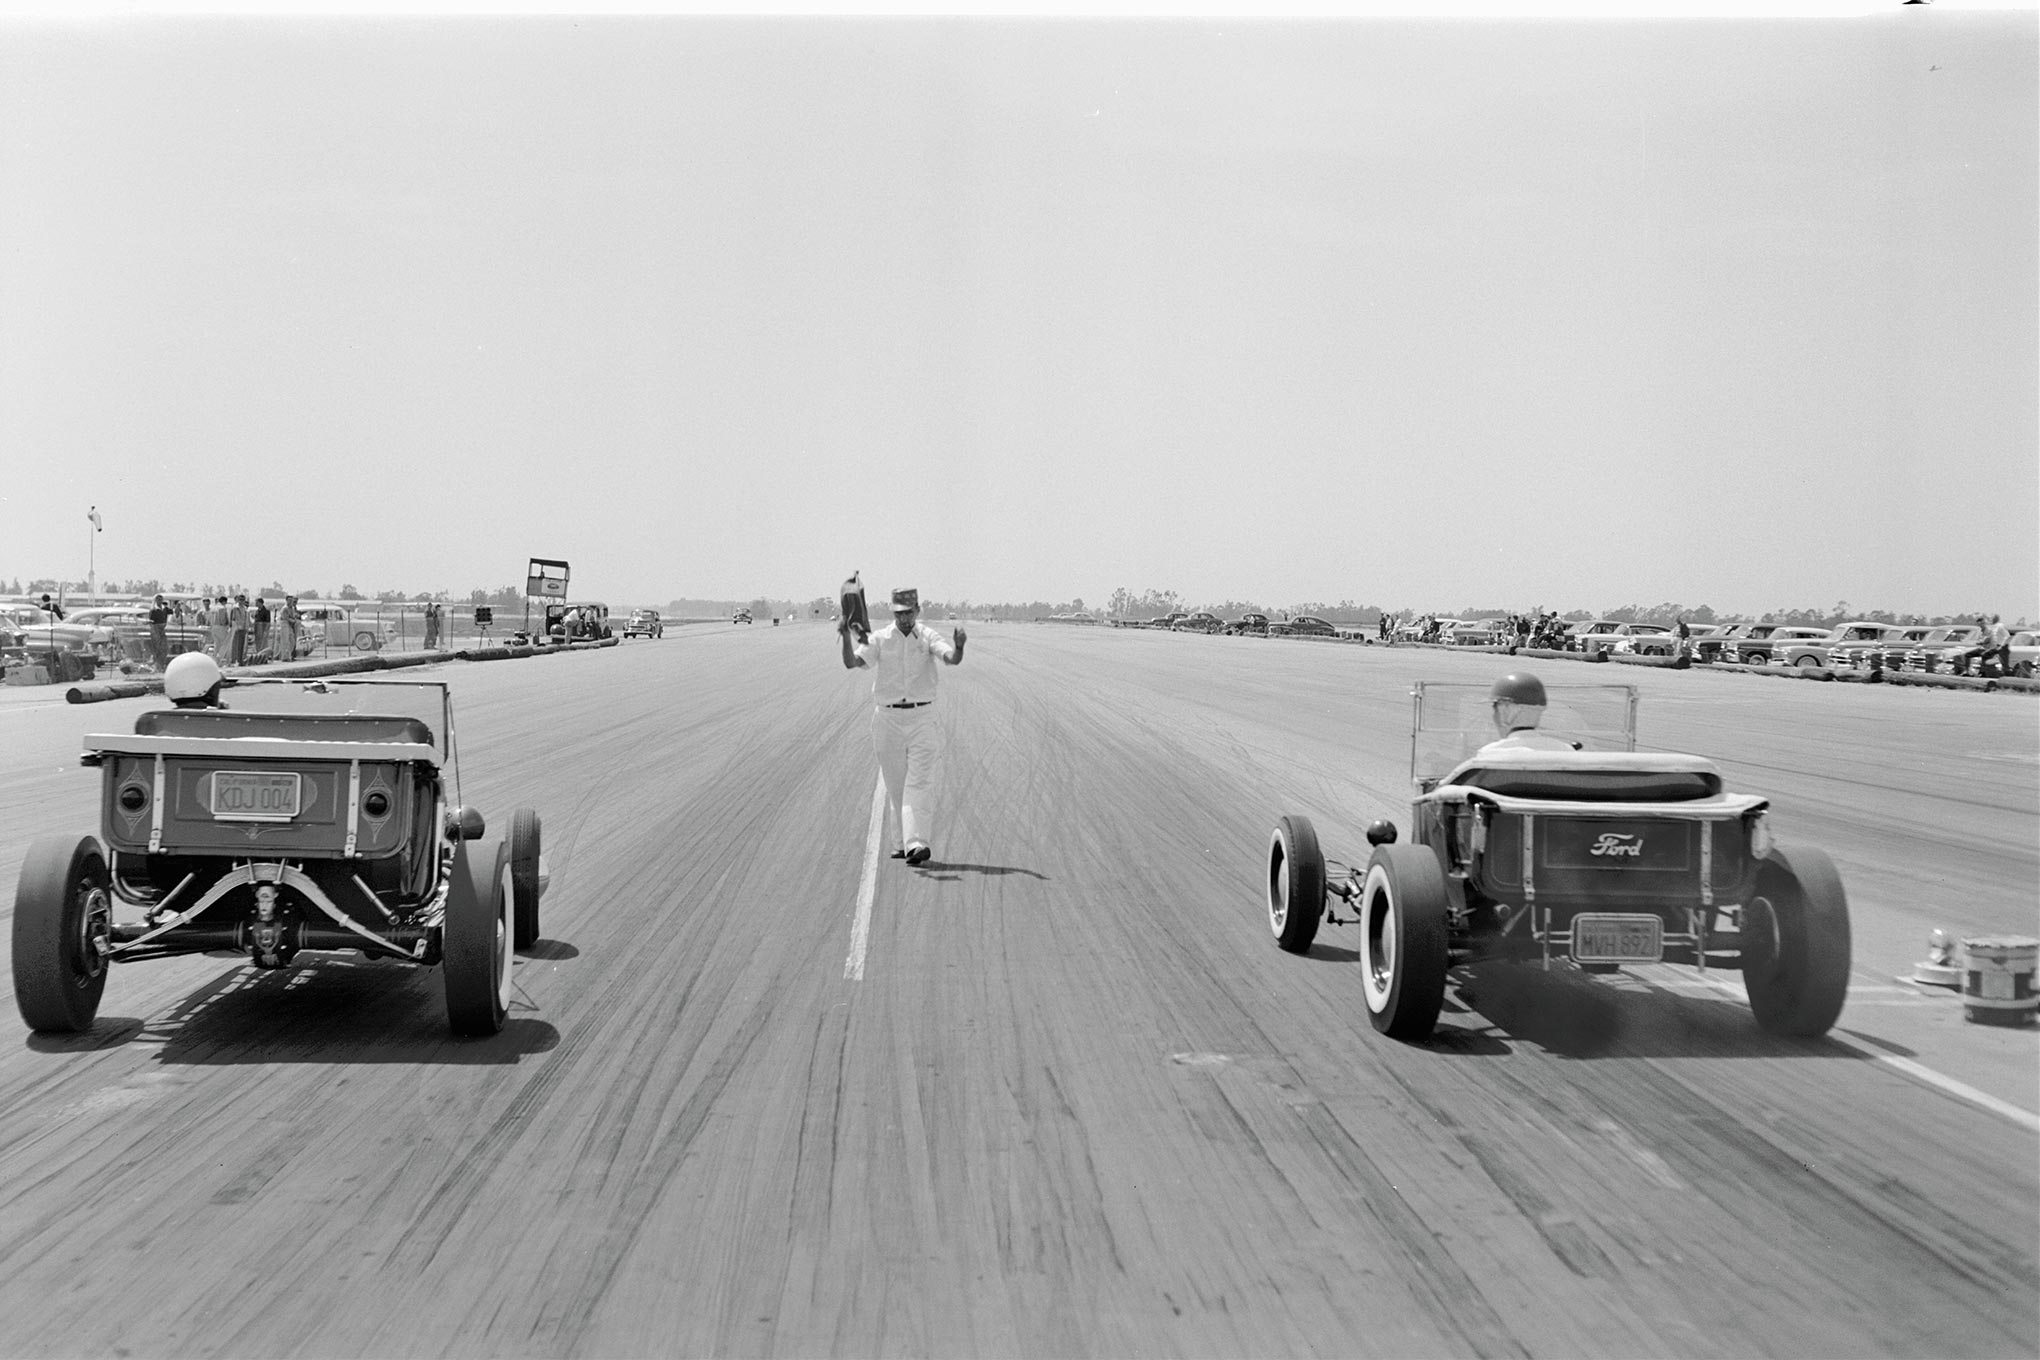 """The world's first and second T-buckets met only this one time, at Santa Ana in March. We thought we'd seen every photo of the grudge match until this Wally Parks negative surfaced in the PPC archive. C.J. """"Pappy"""" Hart flagged off a battle won by Ivo (right), though Grabowski arguably won the war when a Life magazine team followed him—not TV Tommy—to Bob's Big Boy drive-in to shoot the famous full-page photo of Norm chewing on grilled cheese. (See Apr. 20, '57, Life, """"The Drag Racing Game""""; June '57 HRM, """"Life at the Drags."""")"""